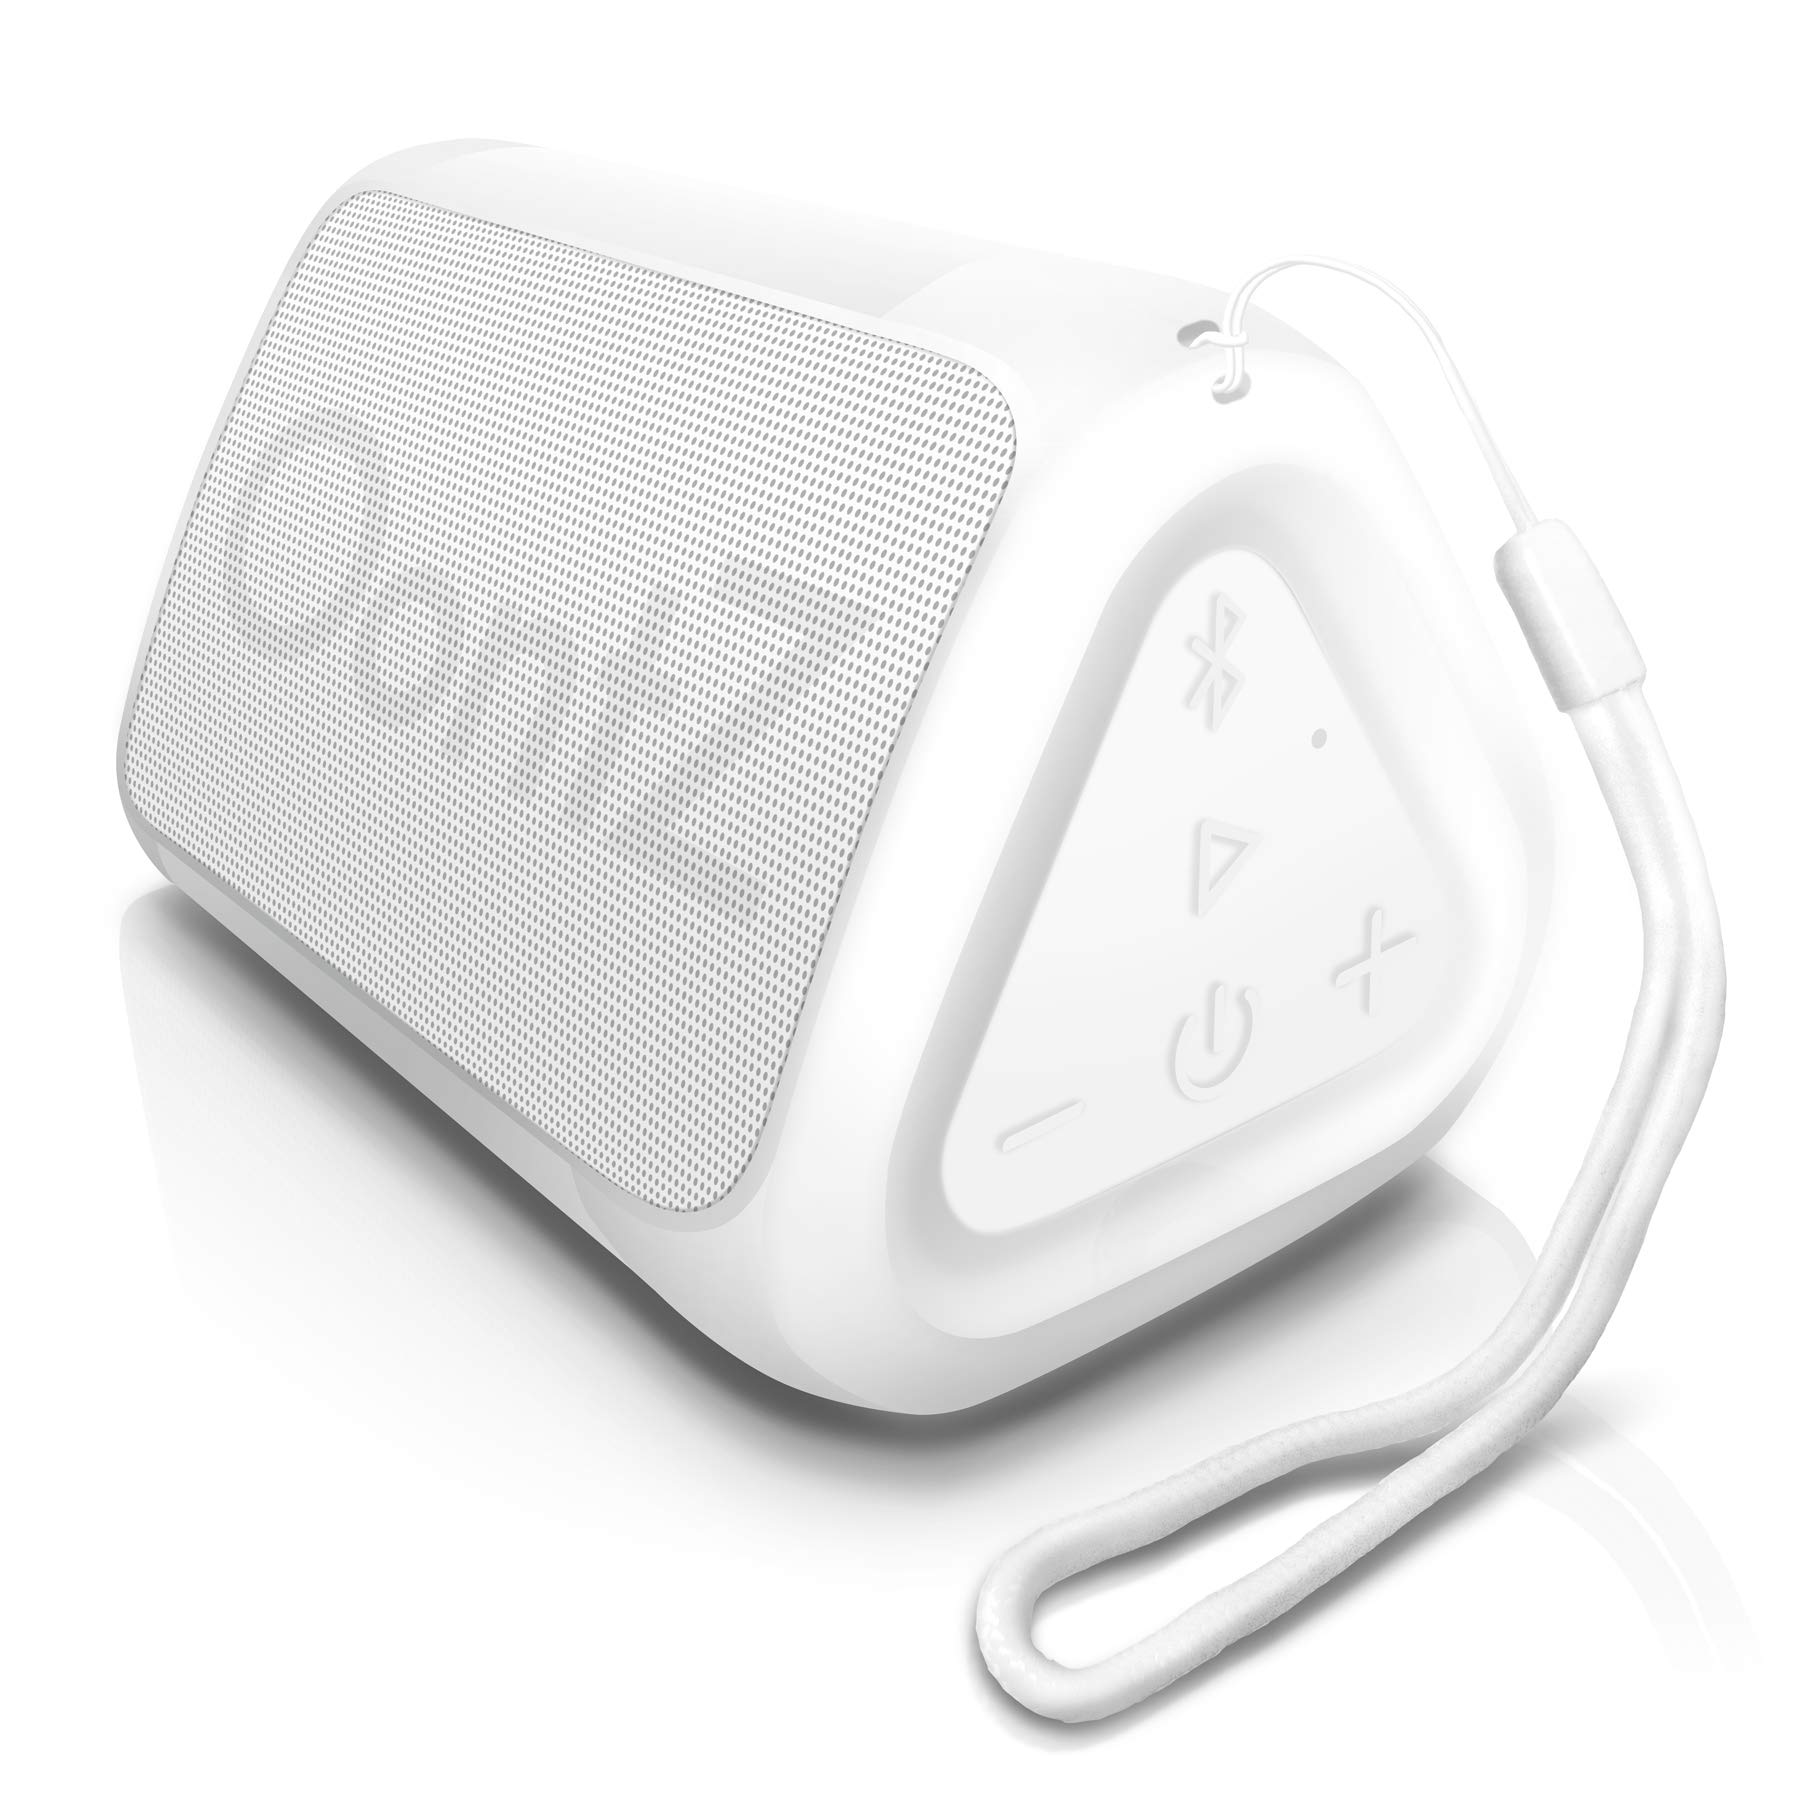 OontZ Angle Solo - Bluetooth Portable Speaker, Compact Size, Surprisingly Loud Volume & Bass, 100 Foot Wireless Range, IPX5, Perfect Travel Speaker, Bluetooth Speakers by Cambridge Sound Works (White) by Cambridge Soundworks